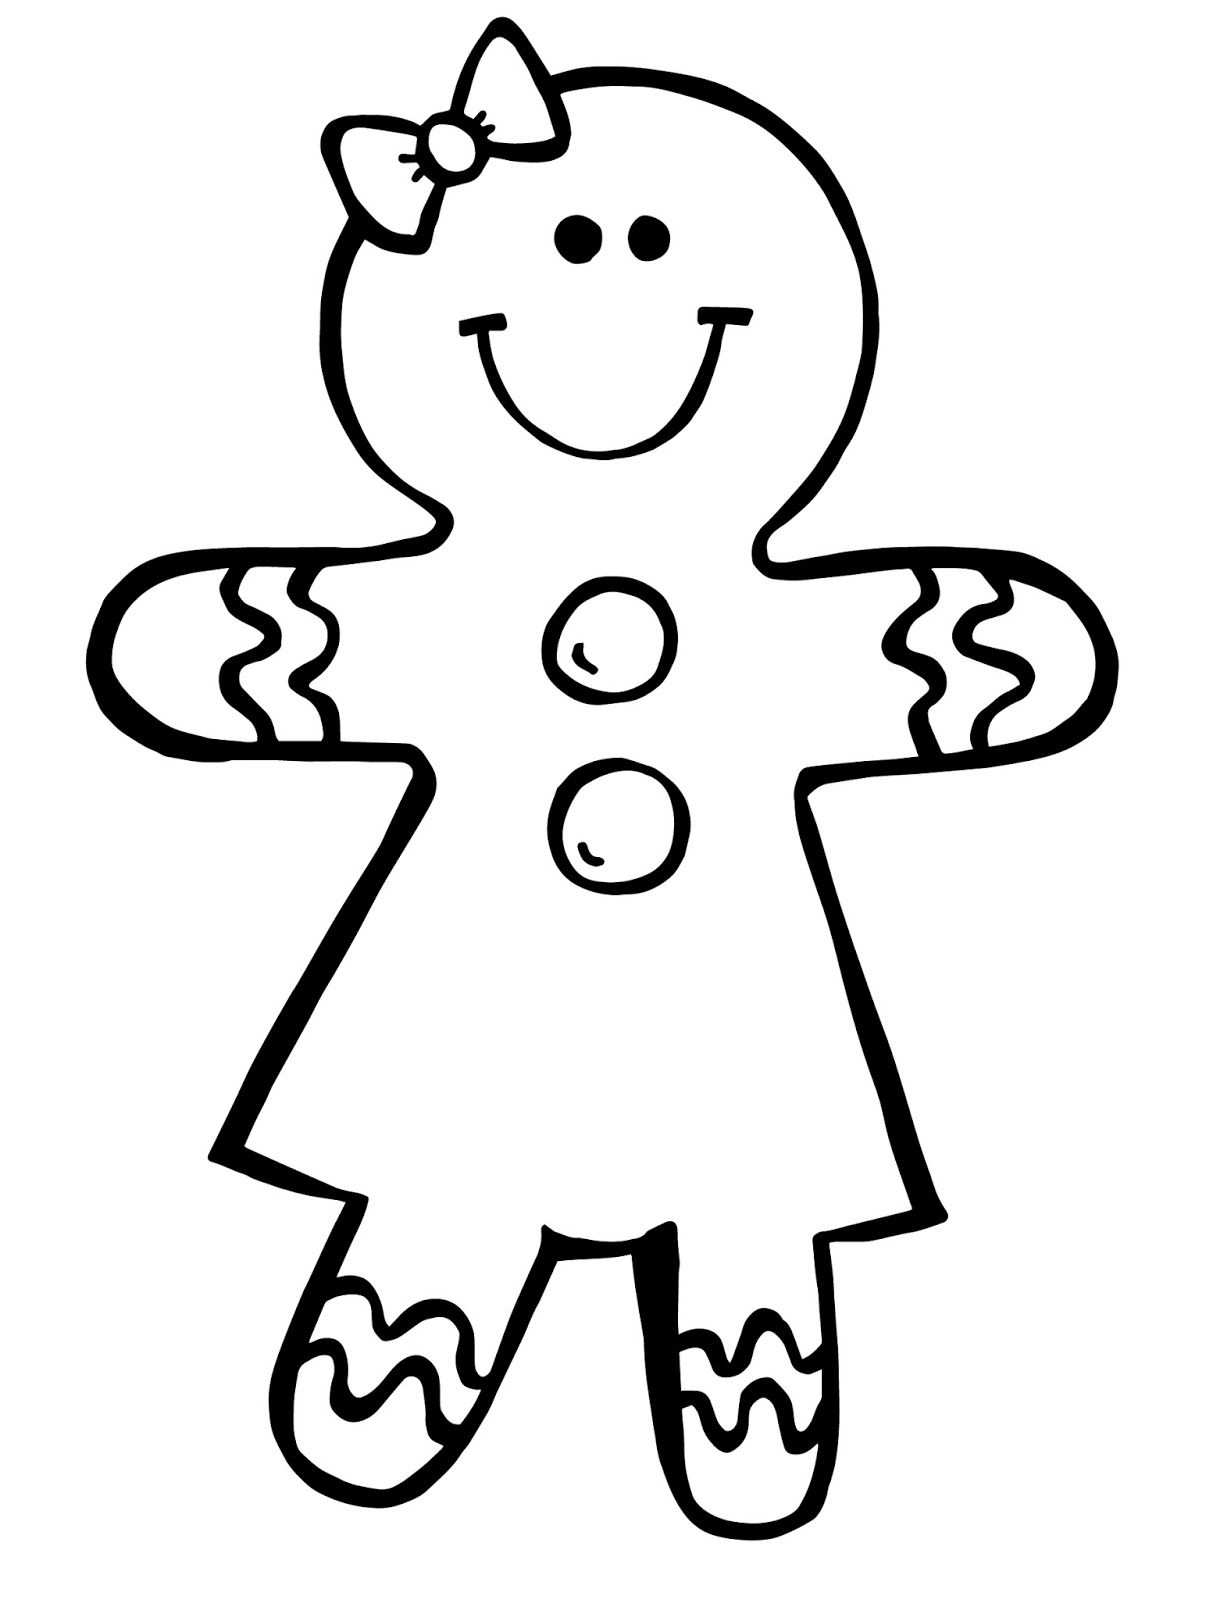 the art of teaching in today s world gingerbread boy girl clipart rh pinterest co uk free clipart gingerbread man outline clipart gingerbread man outline